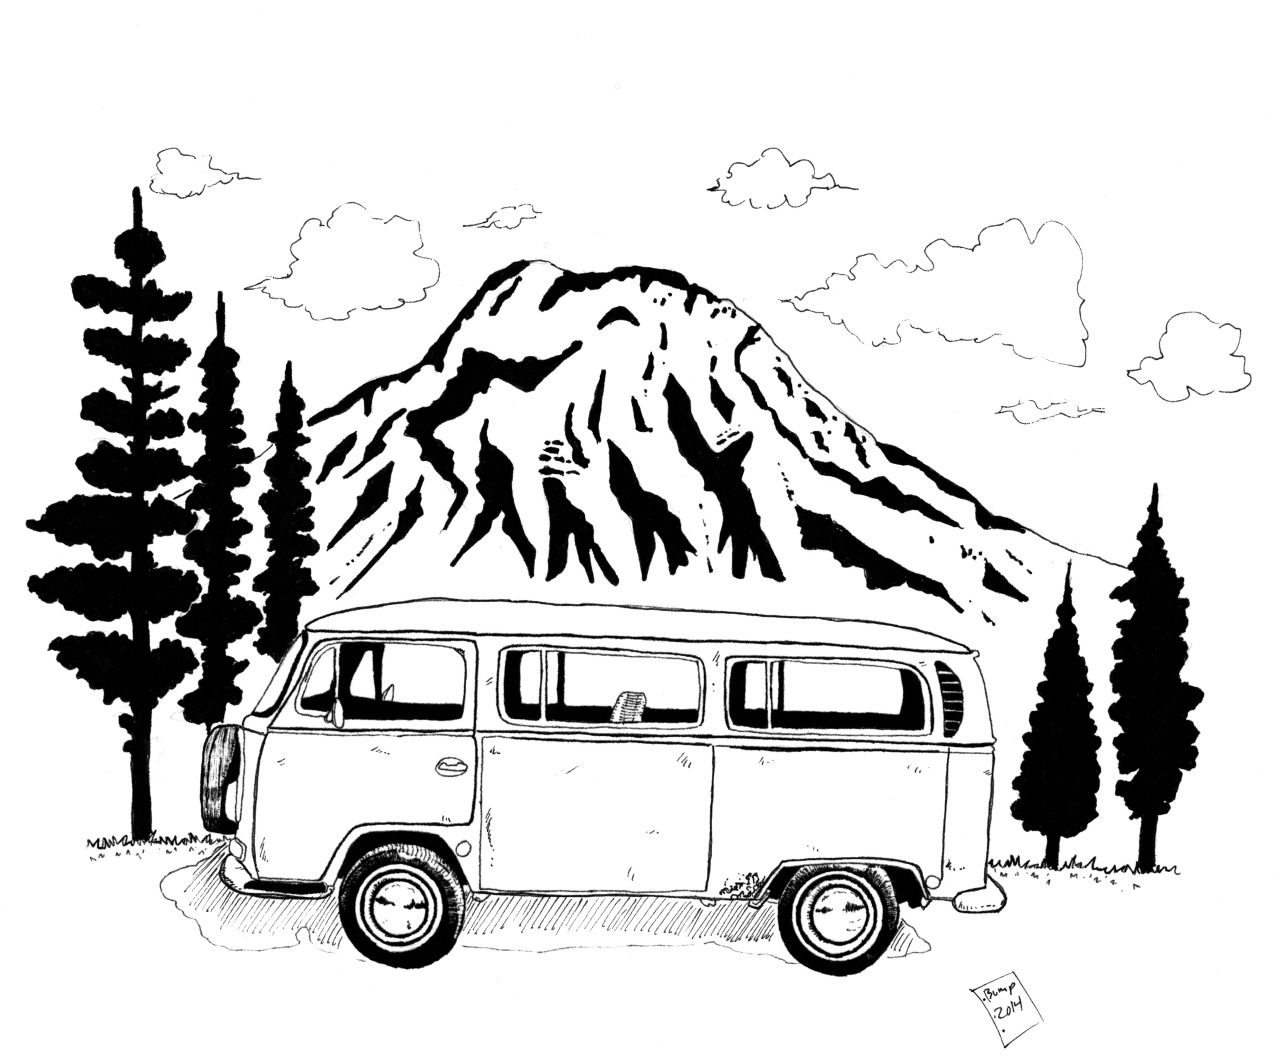 vw bus sketch cool hot rod art from 2009 myrideismecom sketch bus vw